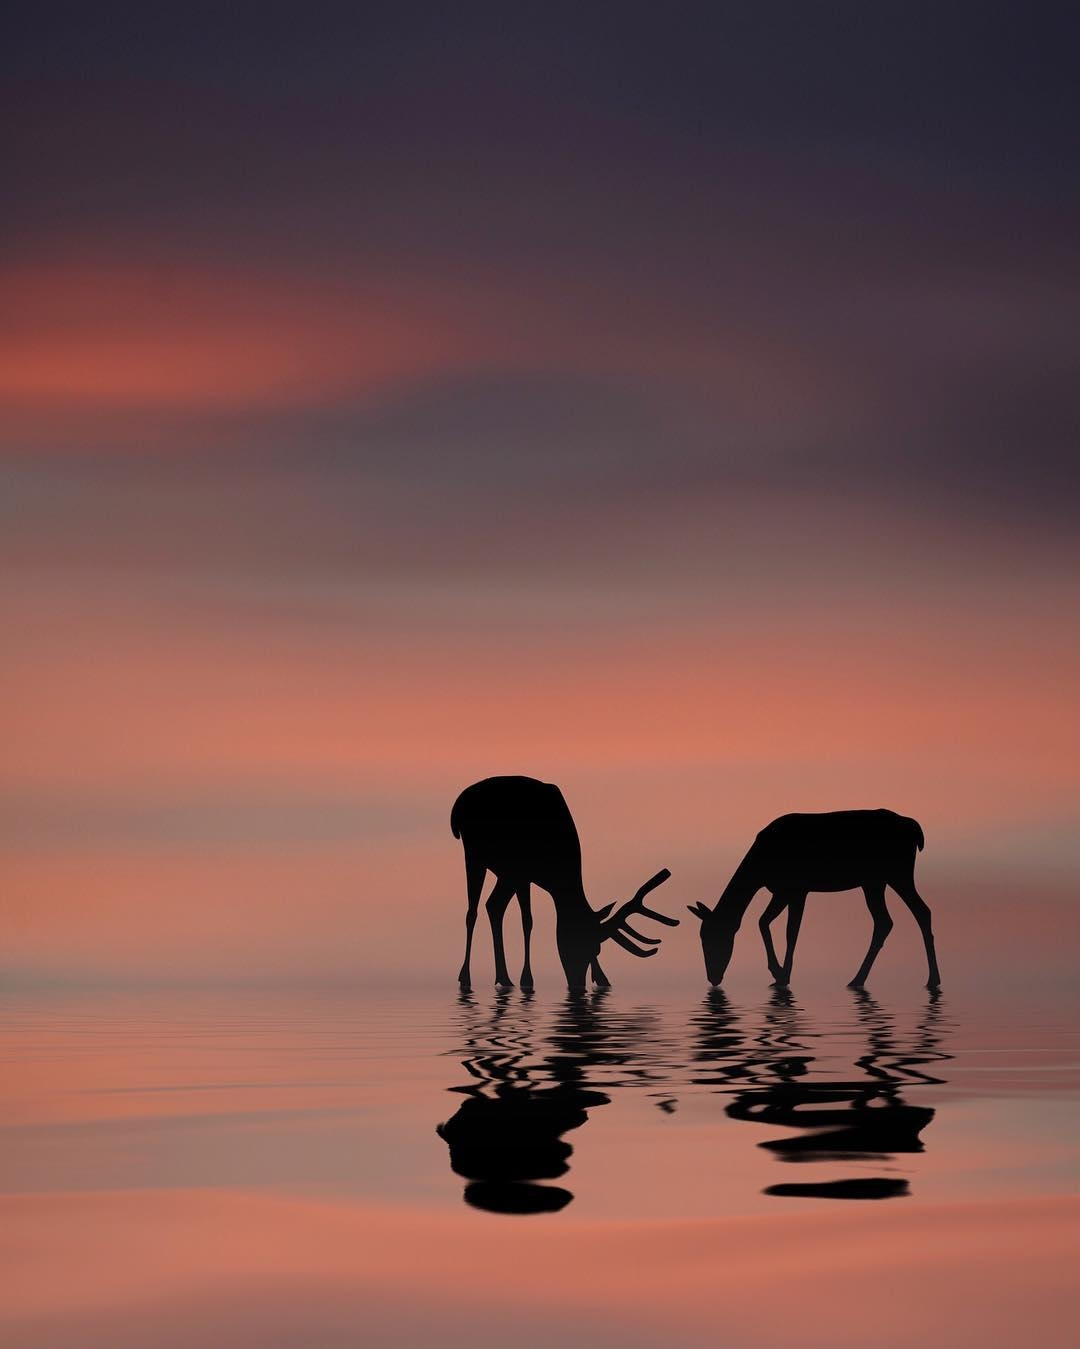 09-Deer-Dominic-Liam-Beautifully-Manipulated-Pictures-at-Sunrise-www-designstack-co